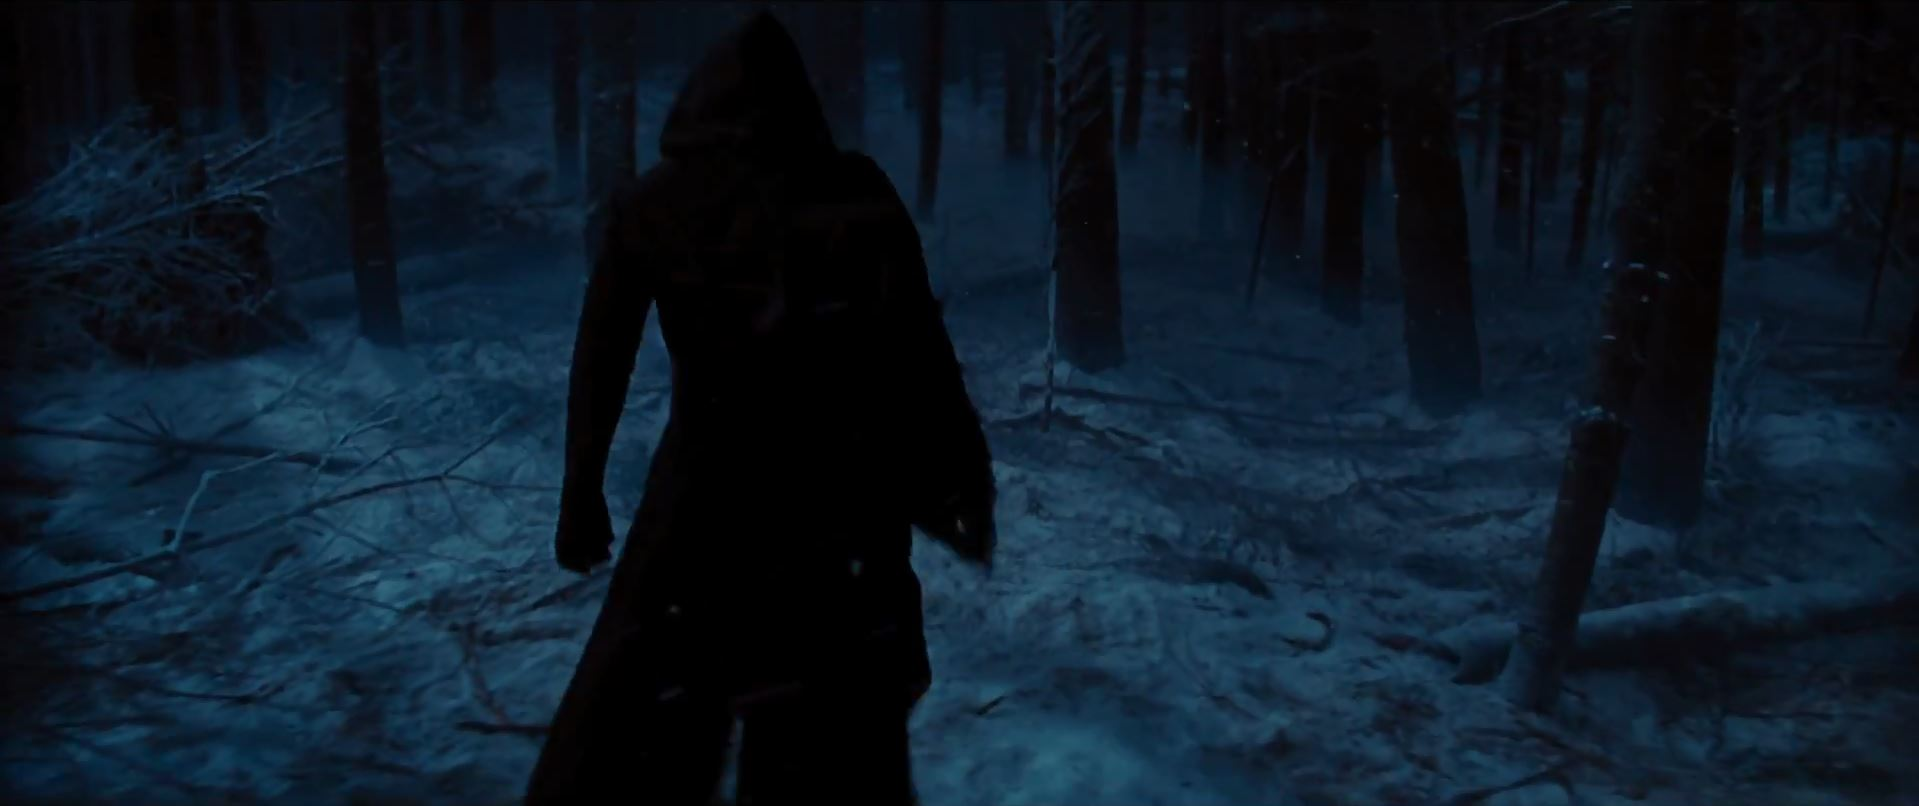 Villain in woods - Star Wars Episode 7 trailer released